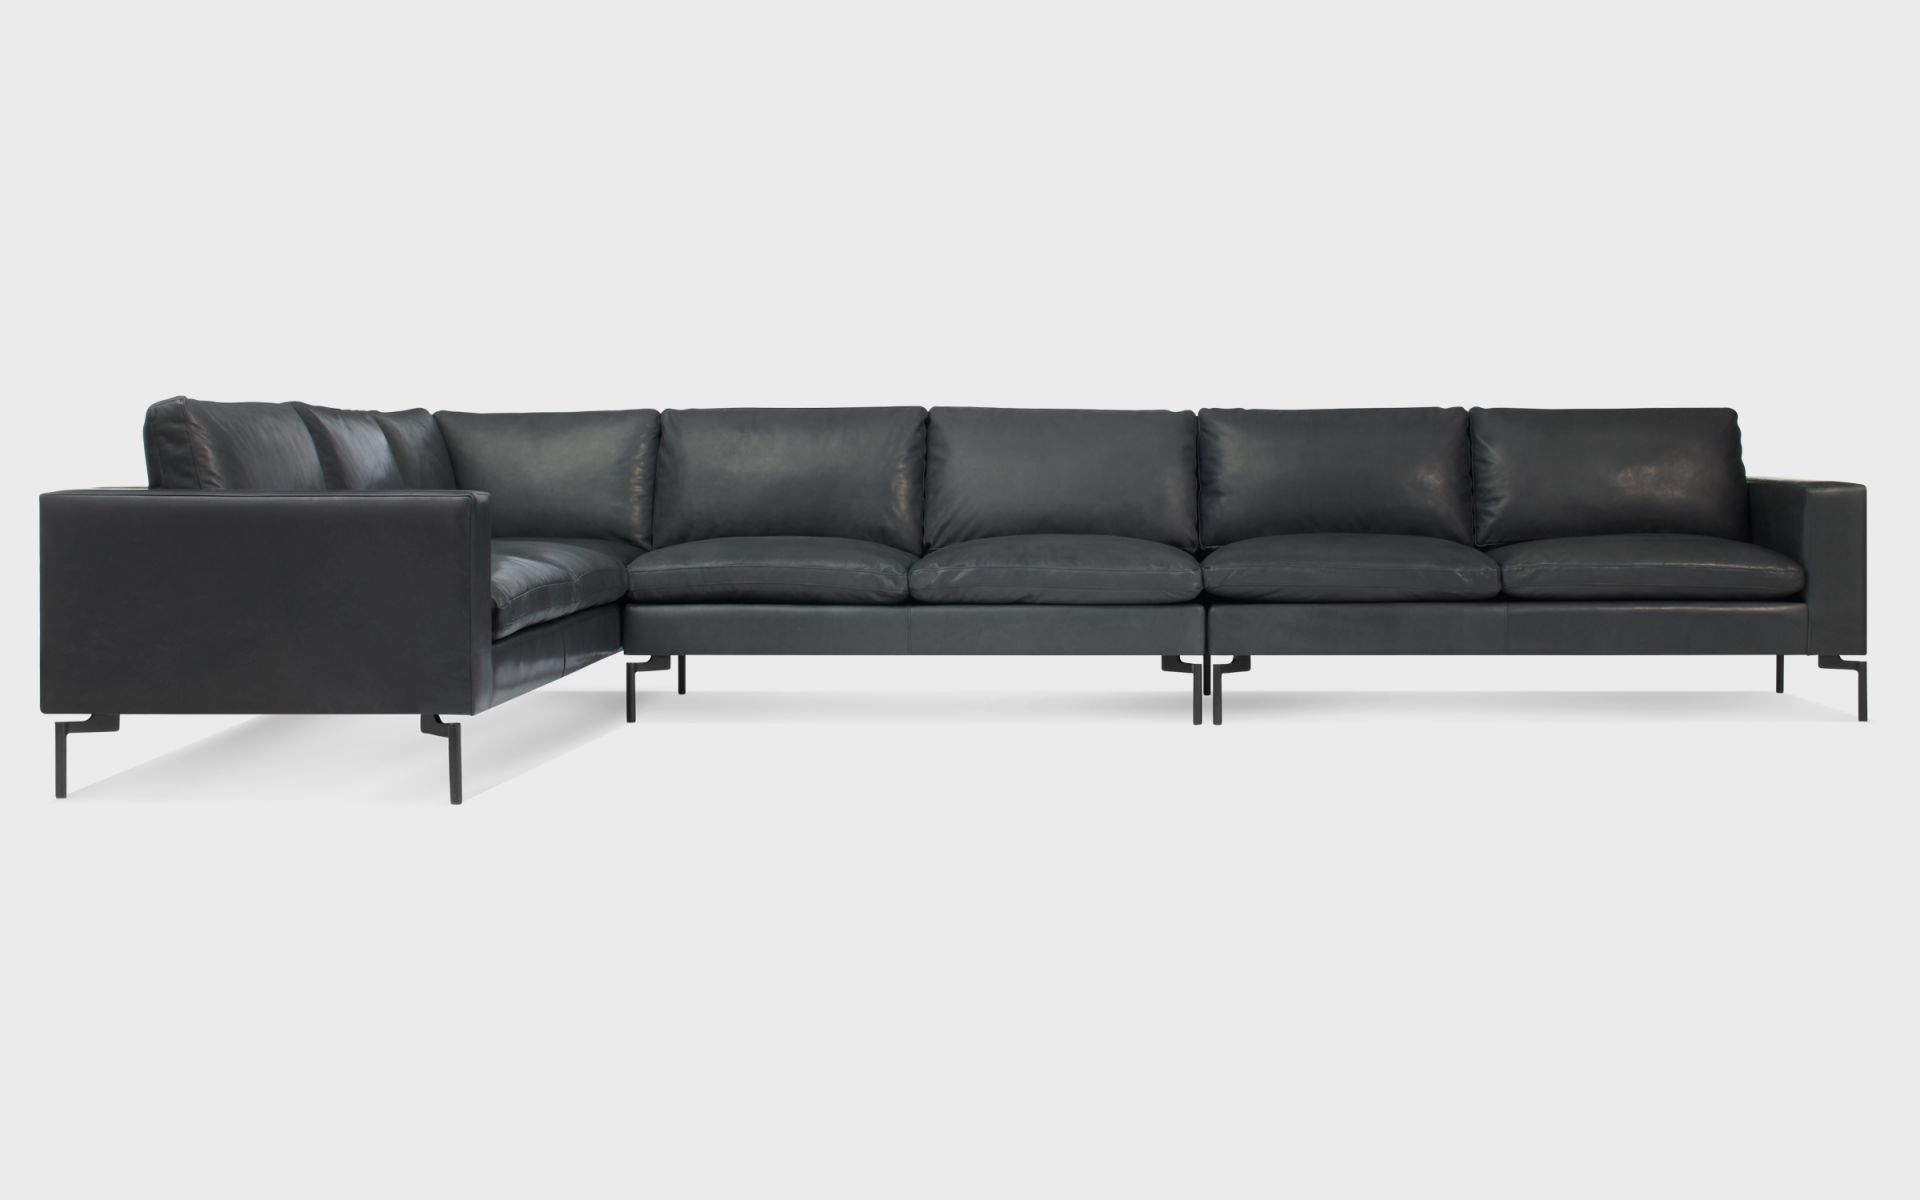 New Standard Large Leather Sectional Sofa | Blu Dot with Best of Leather Sectional Sofa